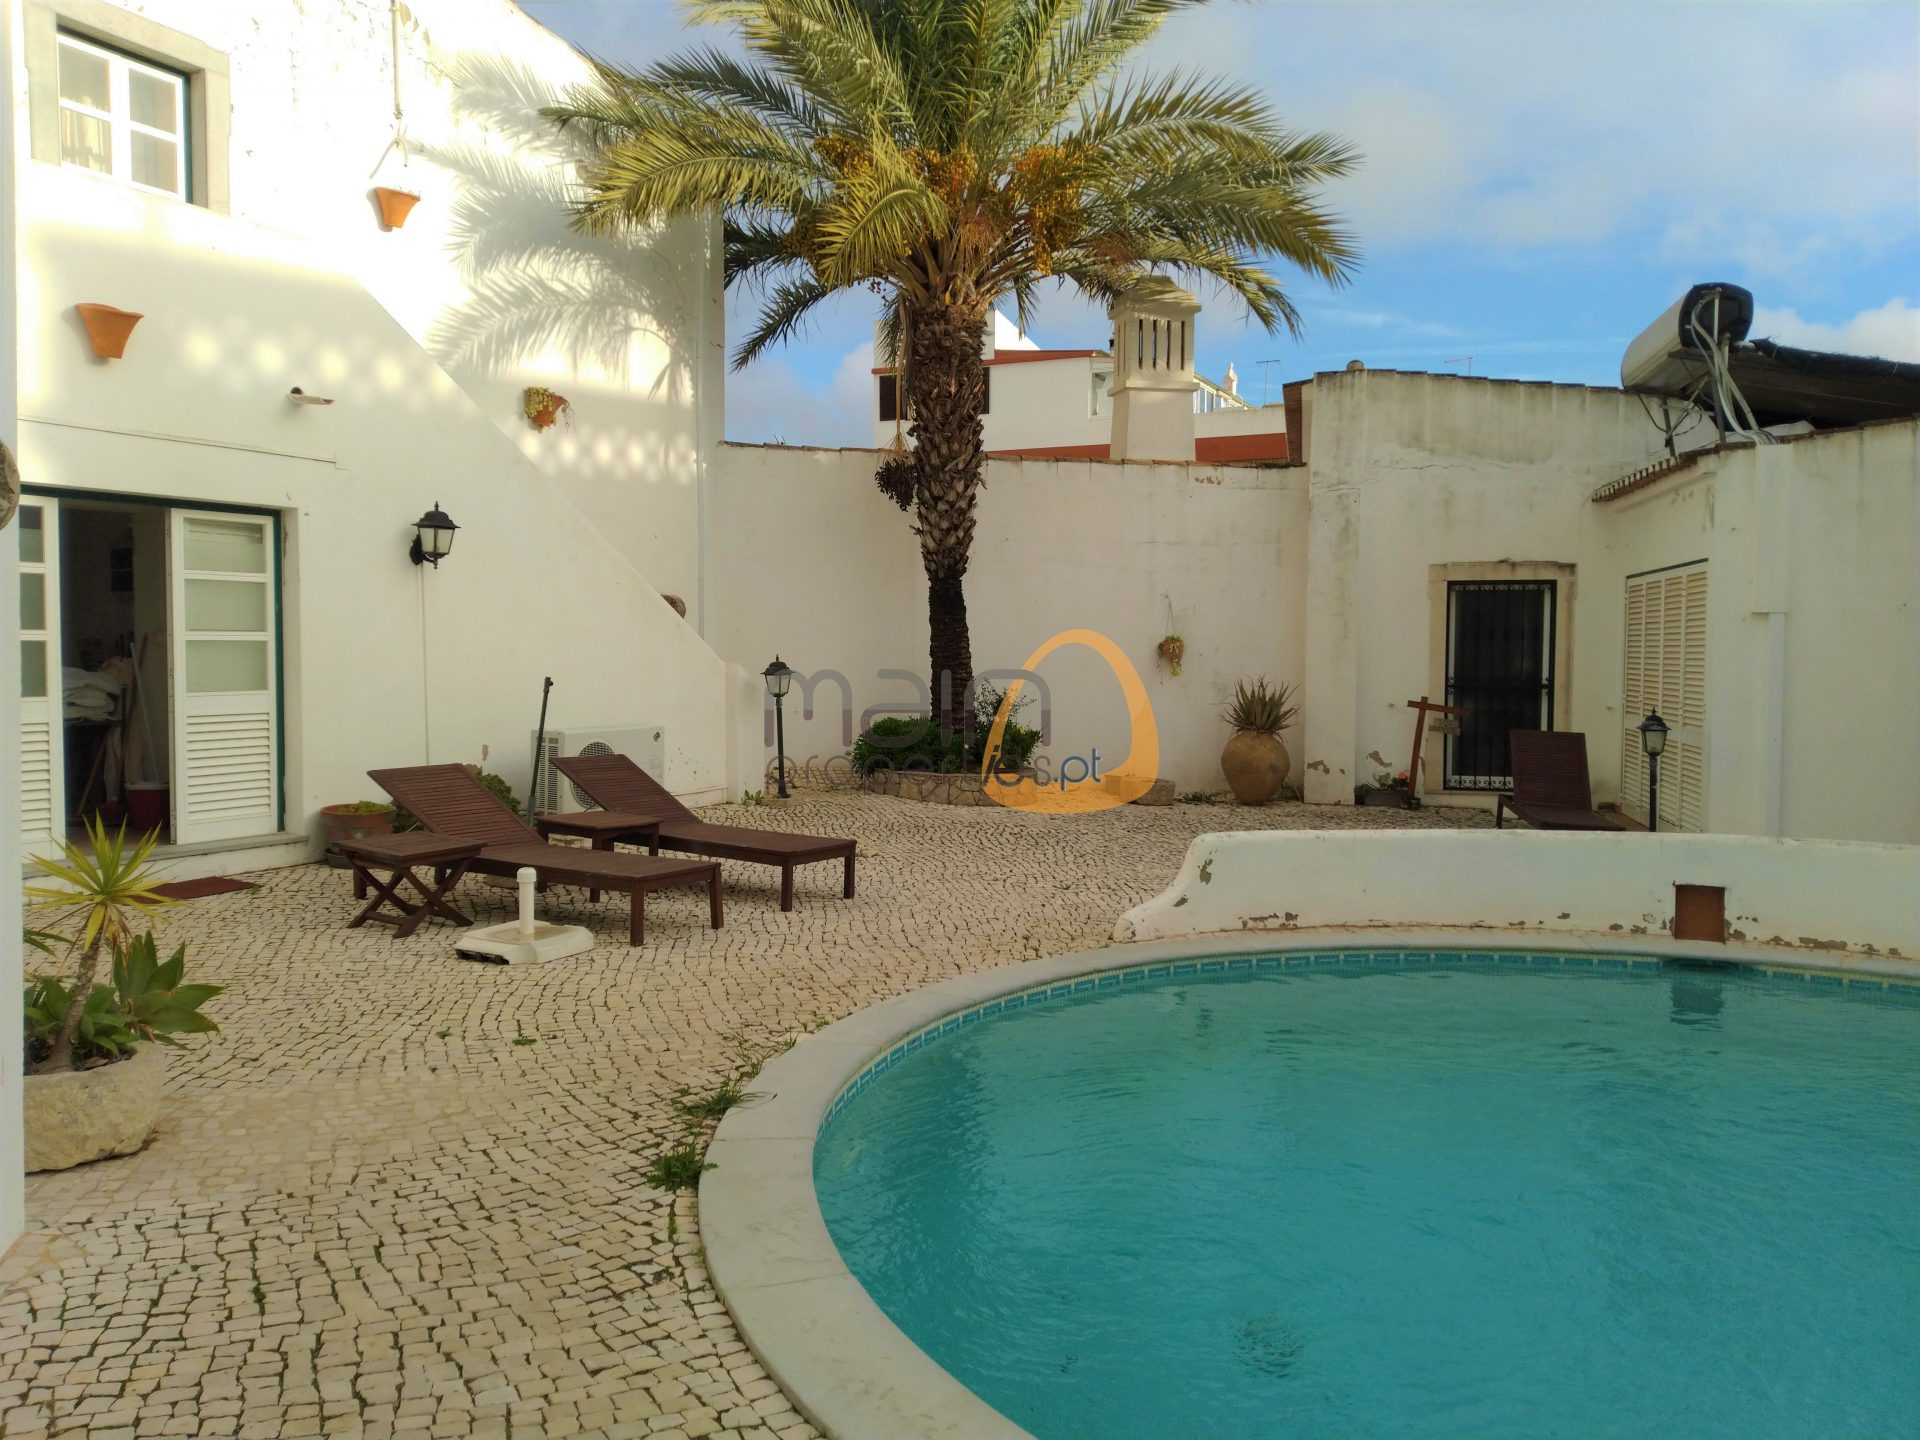 Villa with 9 bedrooms, ideal for local accommodation, in the center of the village of Estói.